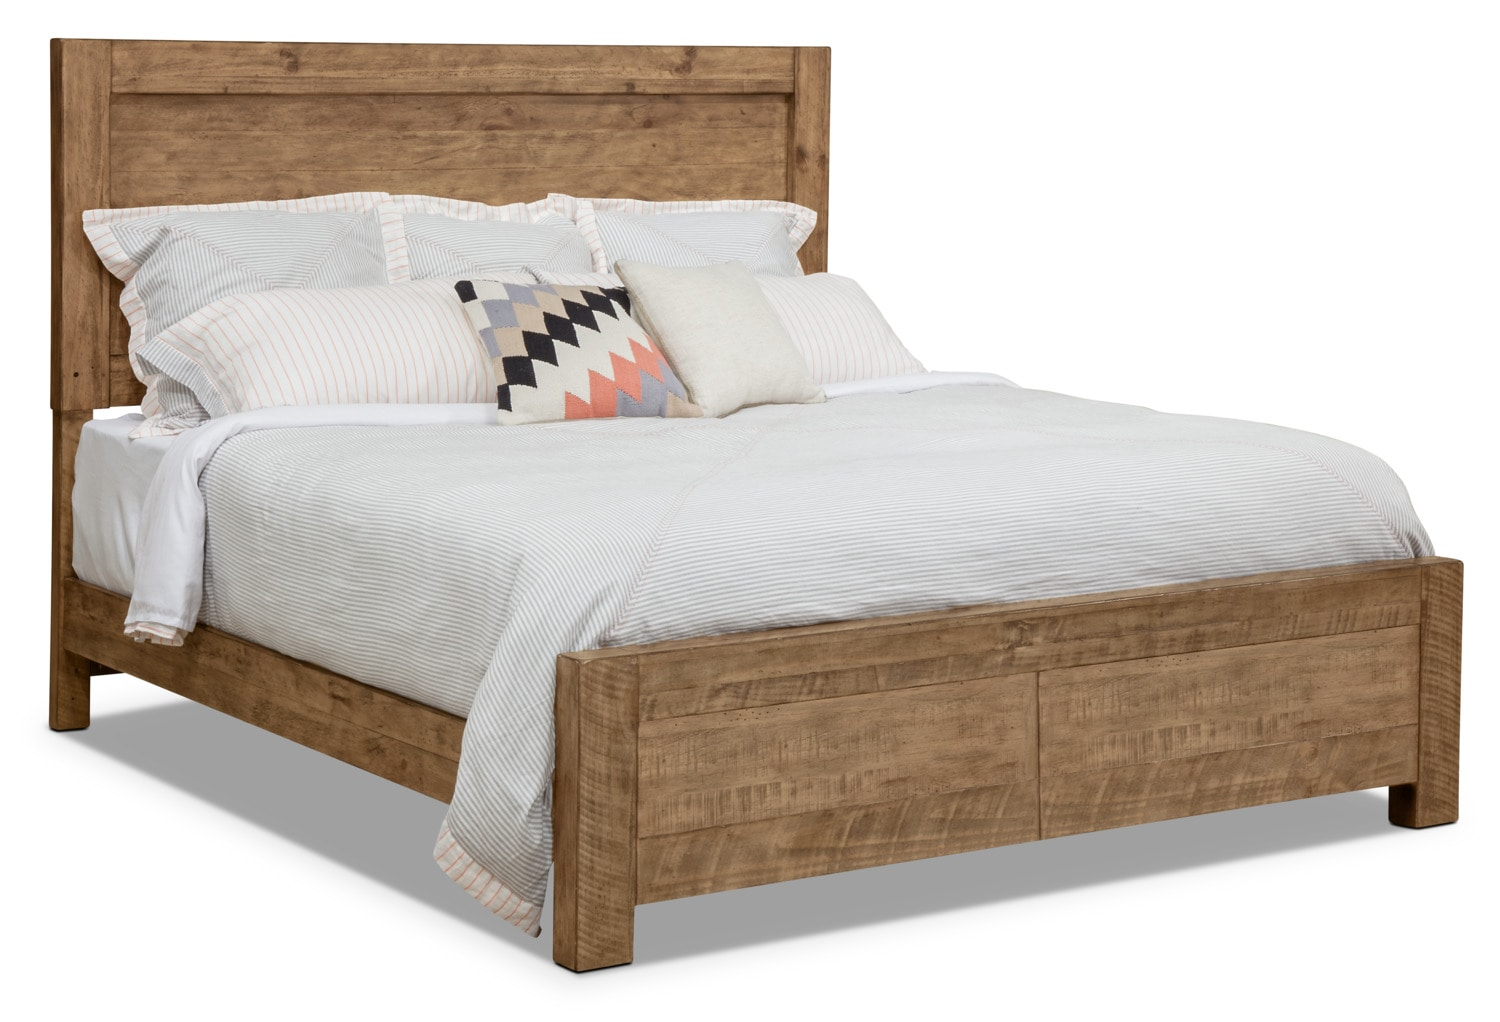 Bedroom Furniture - Griffith Queen Panel Bed with Storage Footboard